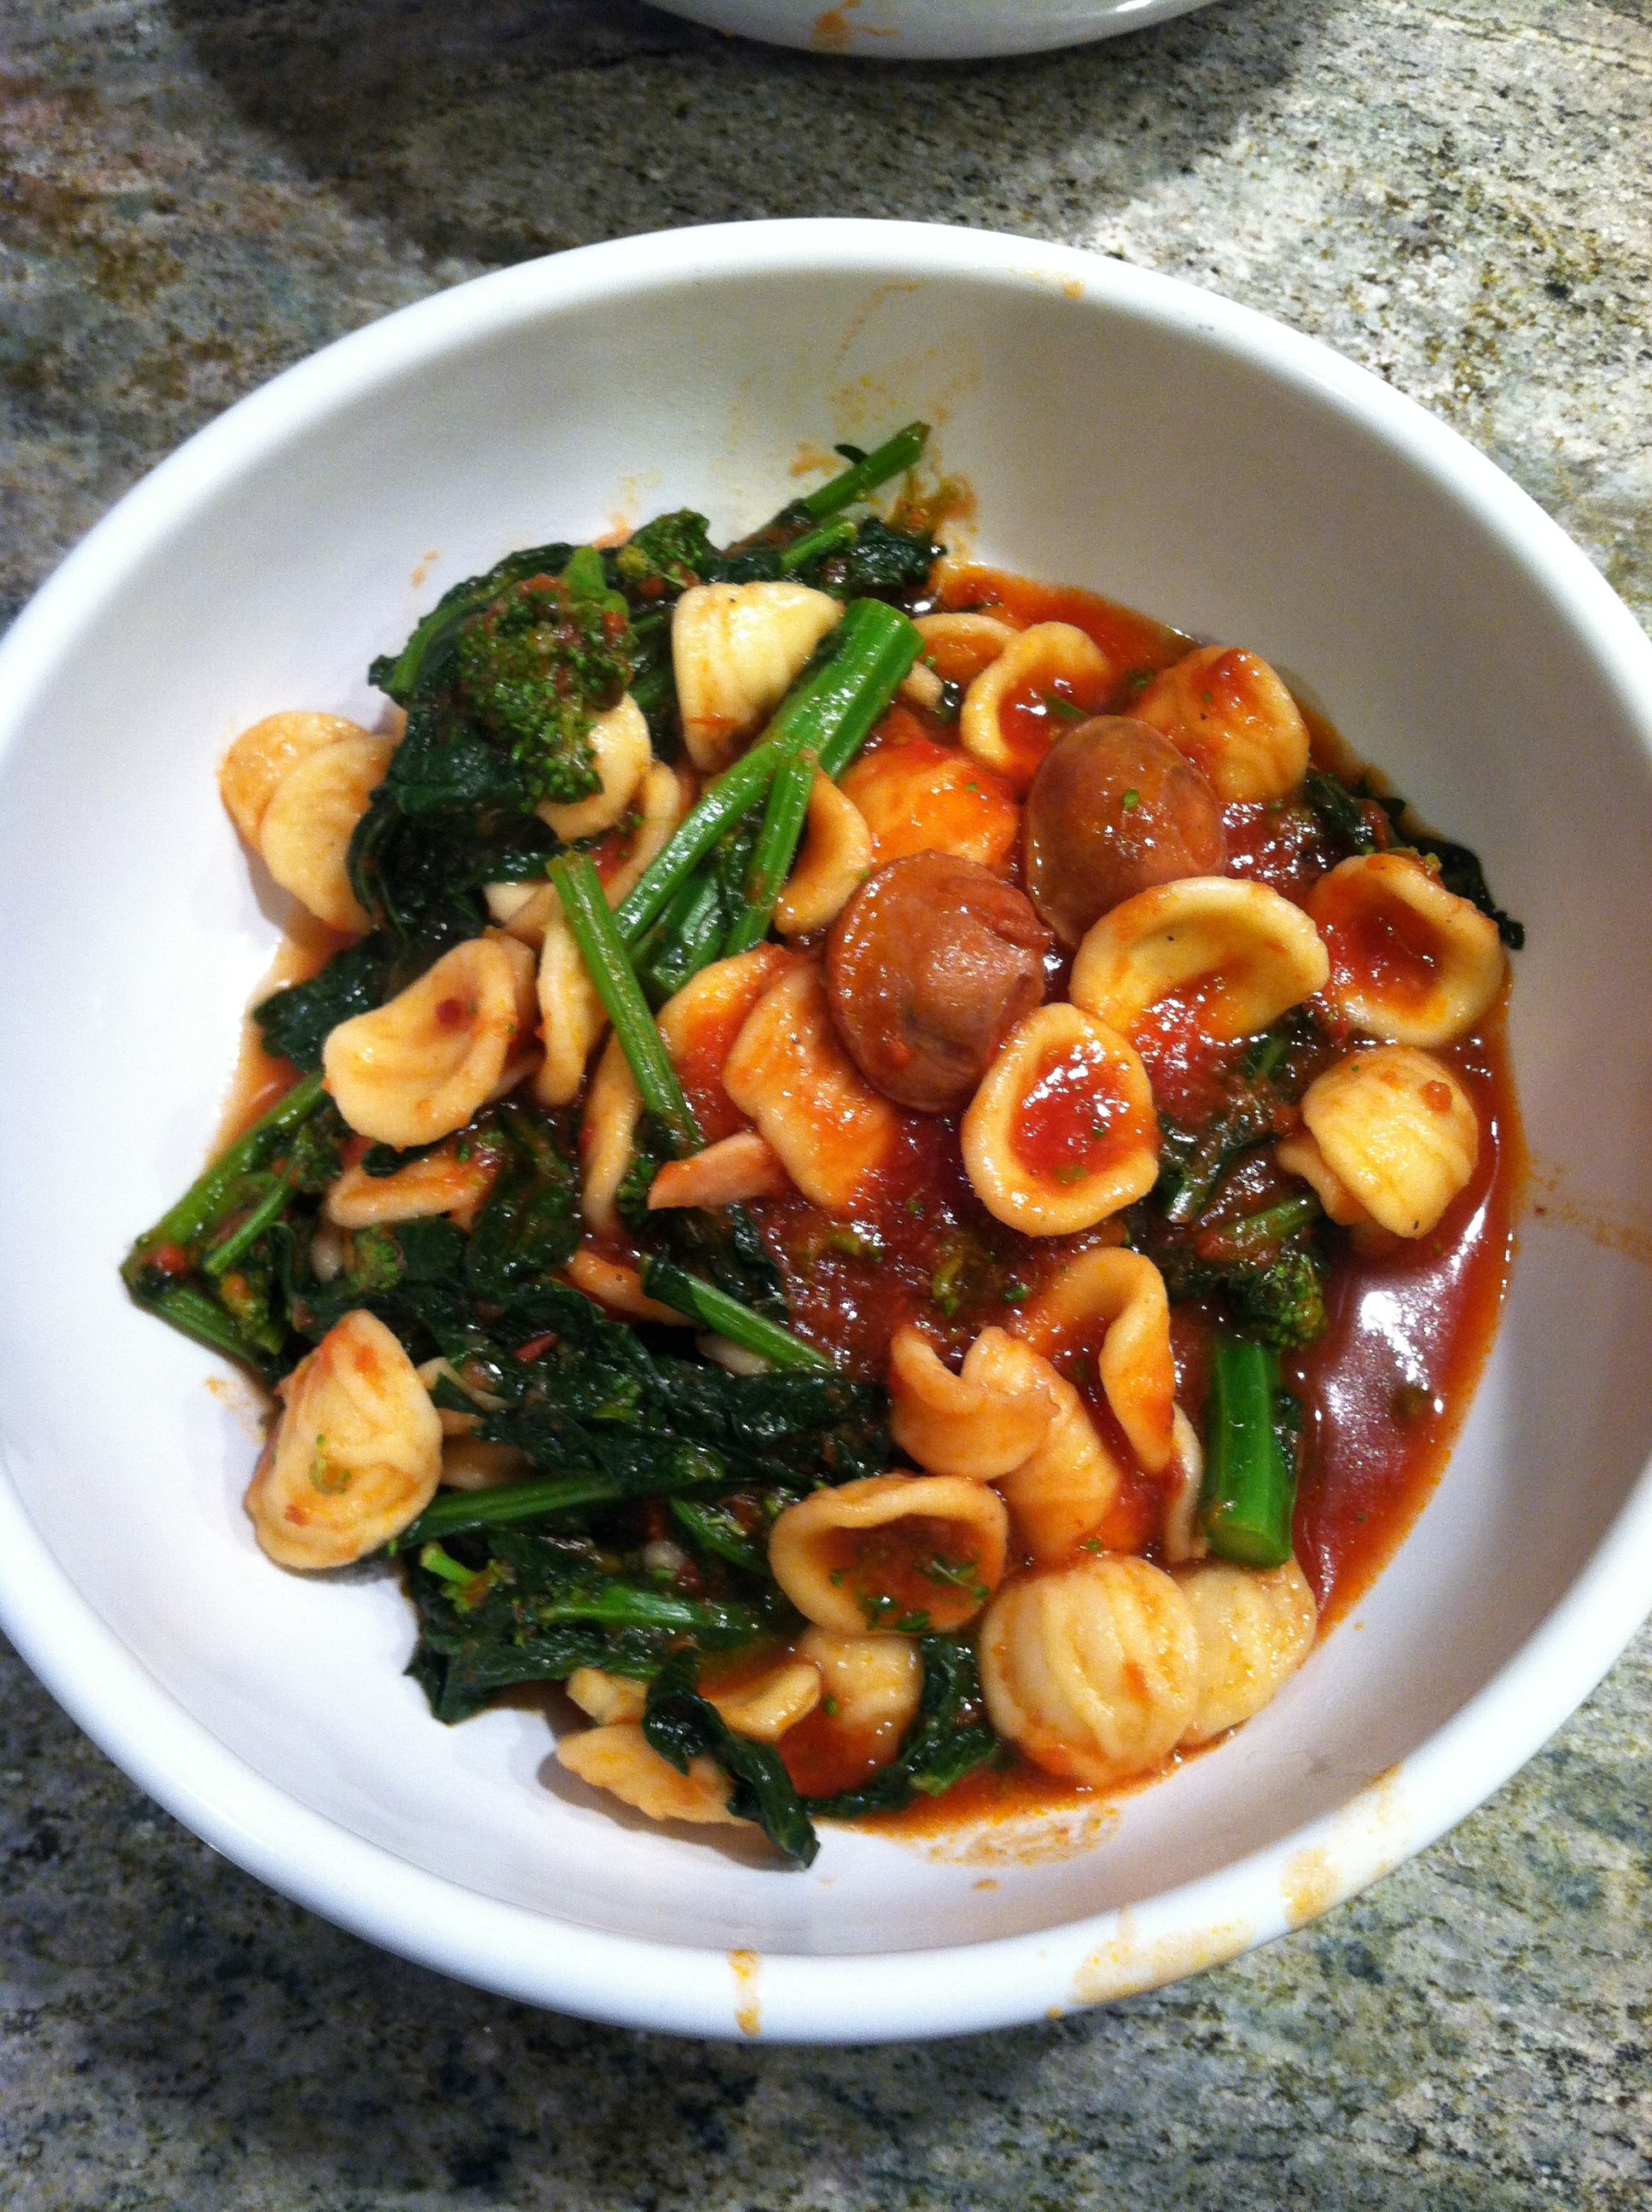 Ina Garten Recipes Ina Garten 39s Recipe For Sausage Broccoli Rabe And